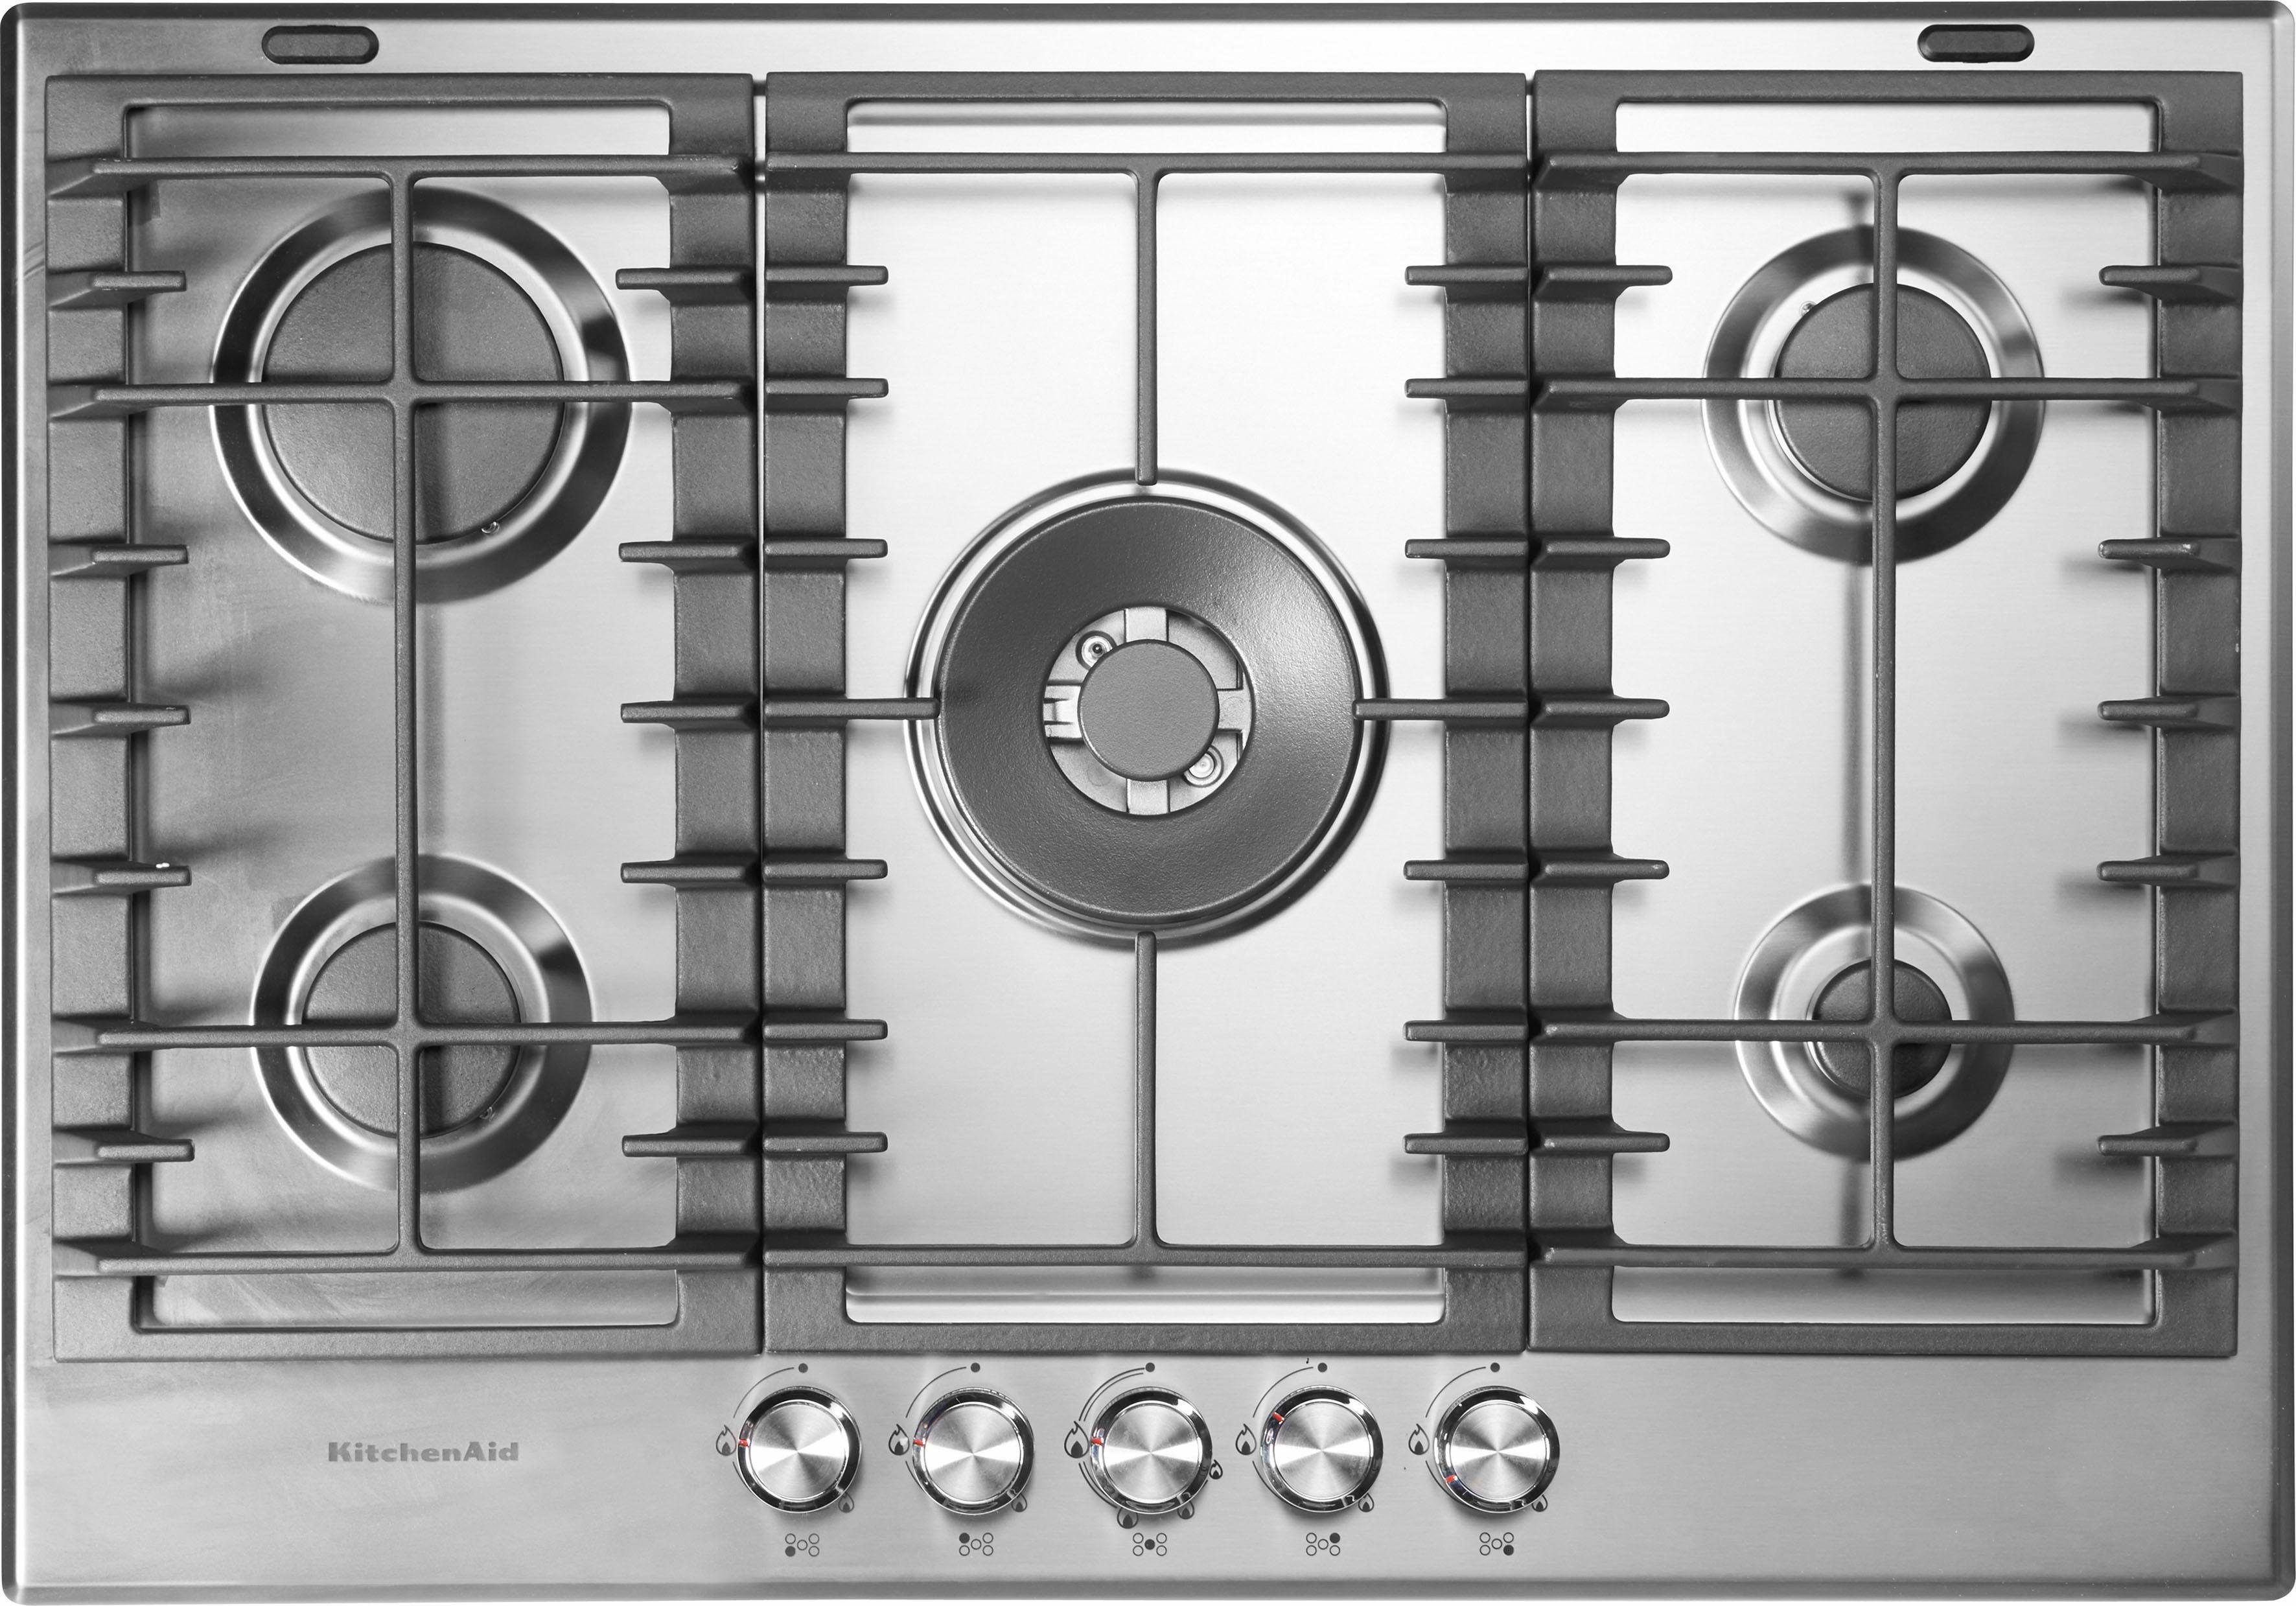 KitchenAid Gaskochfeld KHMP5 77510